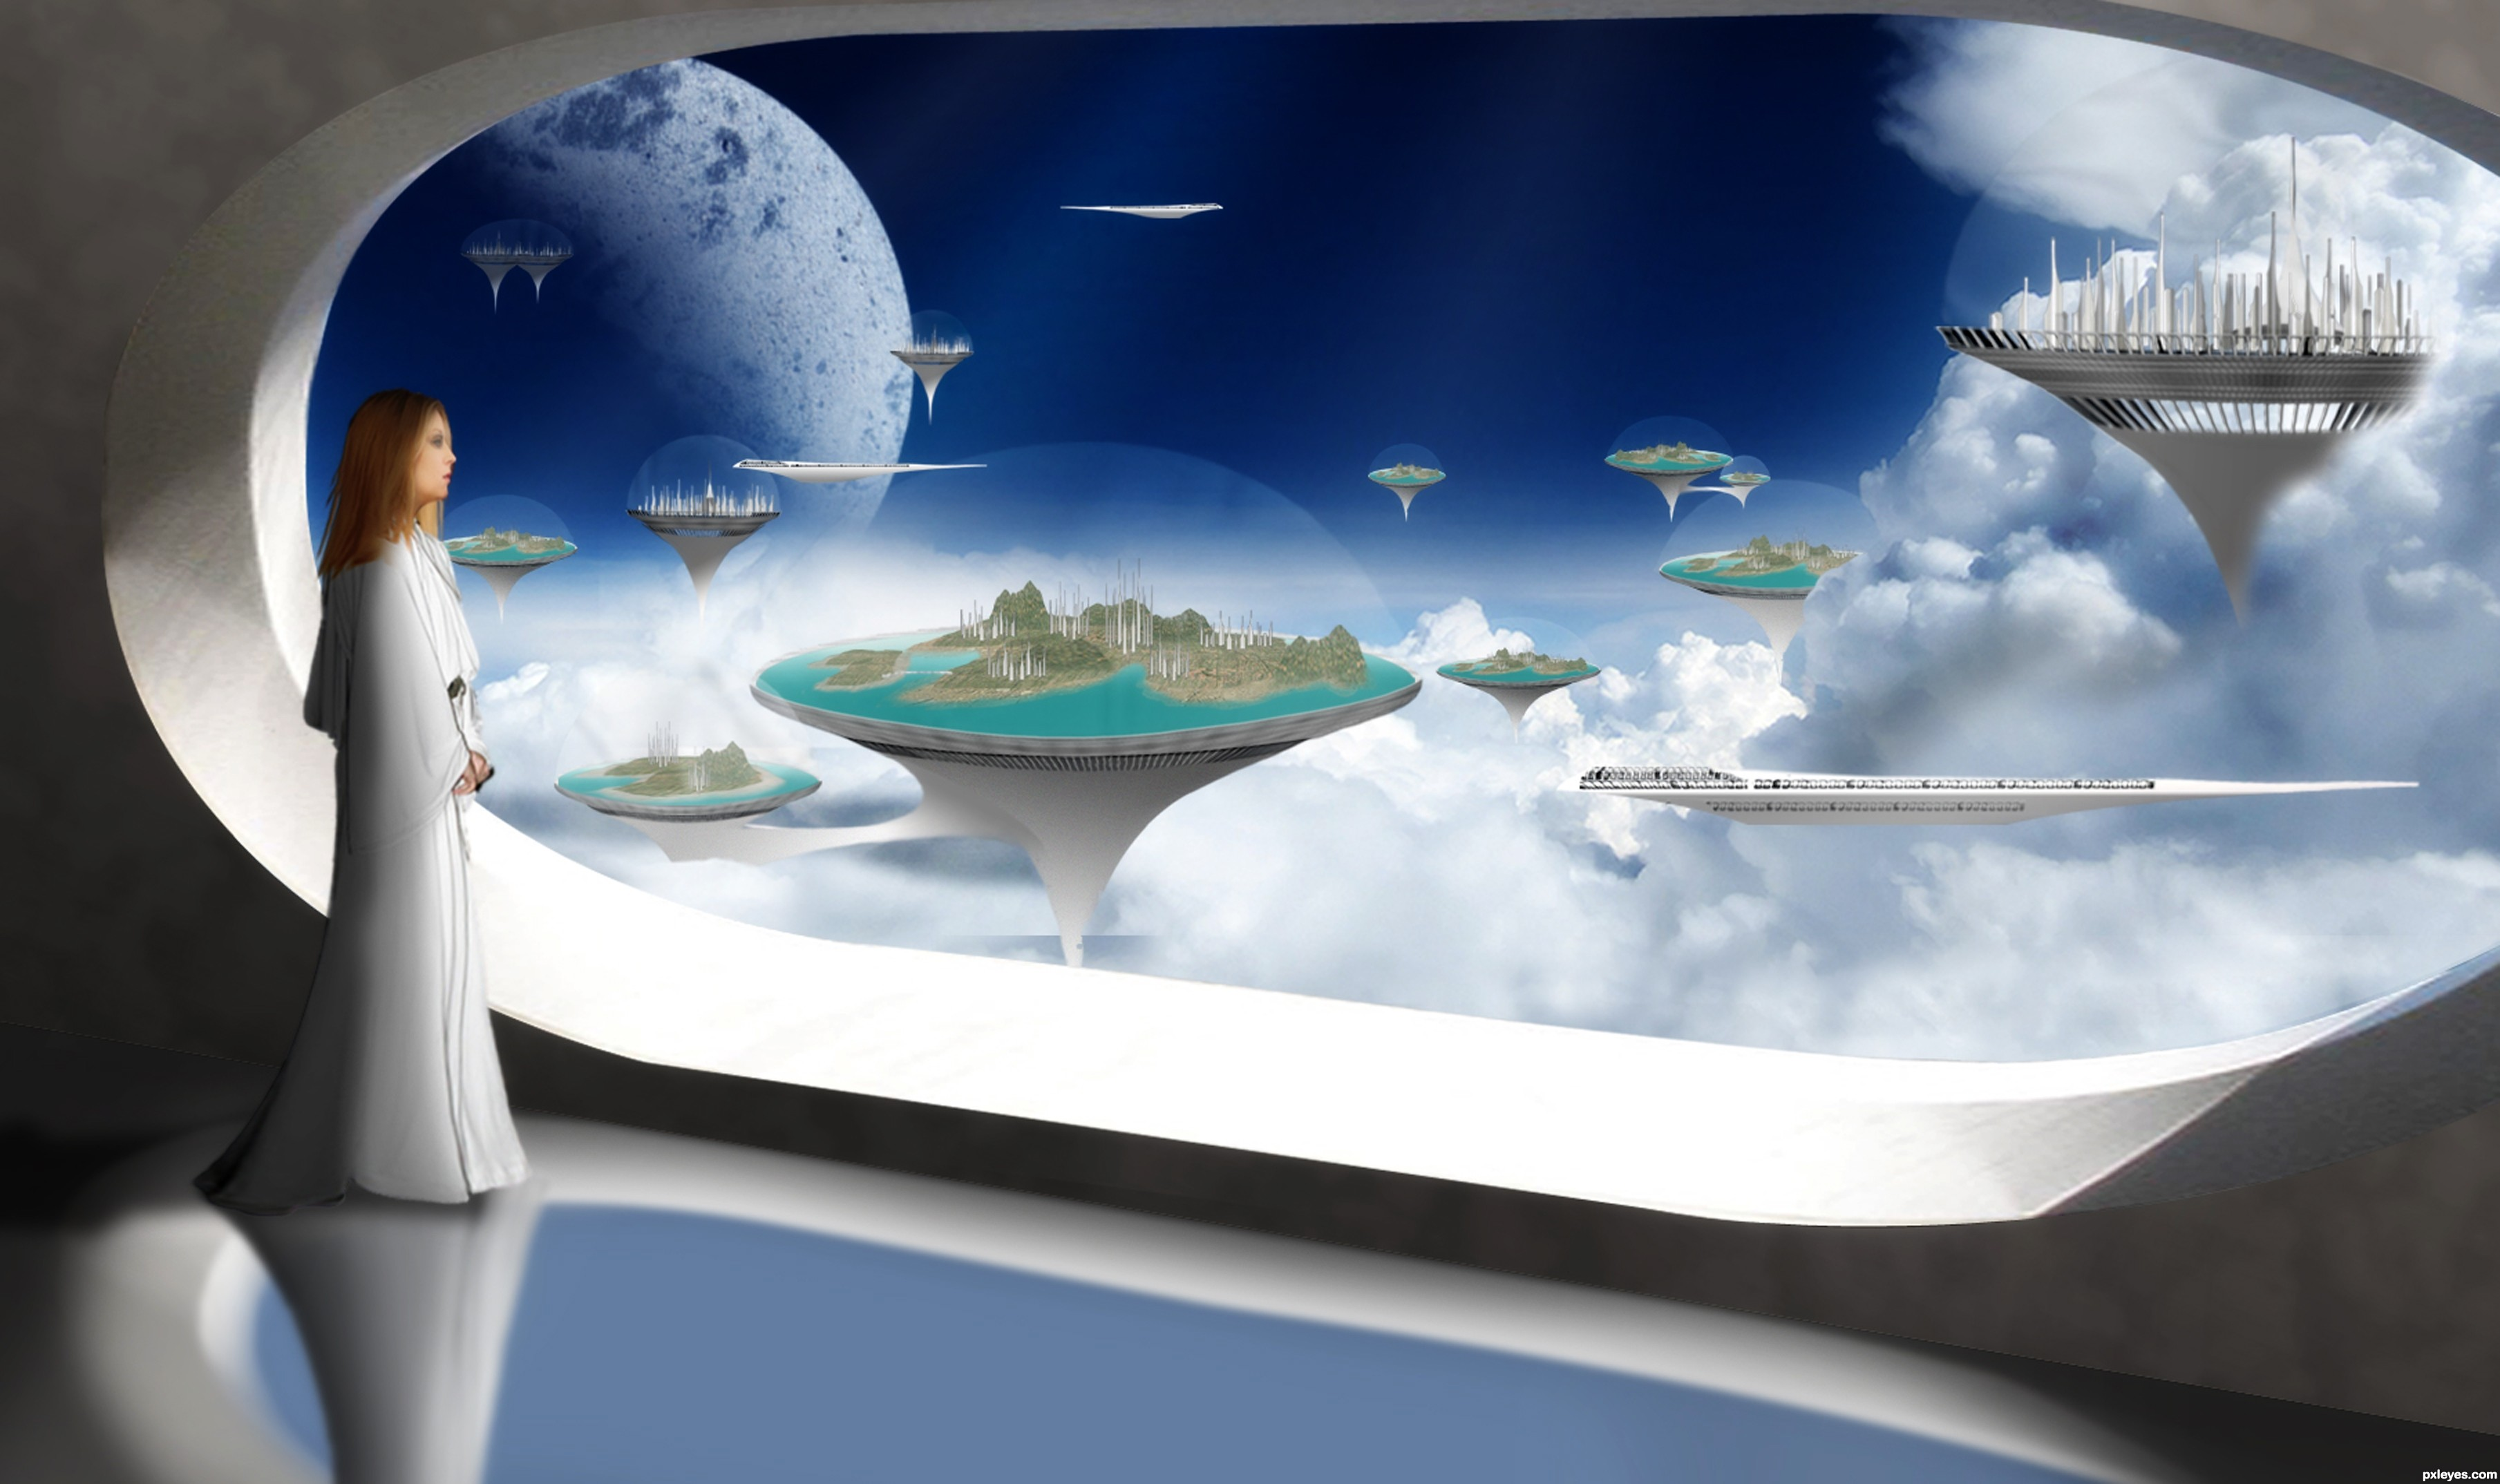 http://www.pxleyes.com/images/contests/mixed-media-35/fullsize/Pleiadians--The-Galactic-Federation-of-Light-5069249780050_hires.jpg